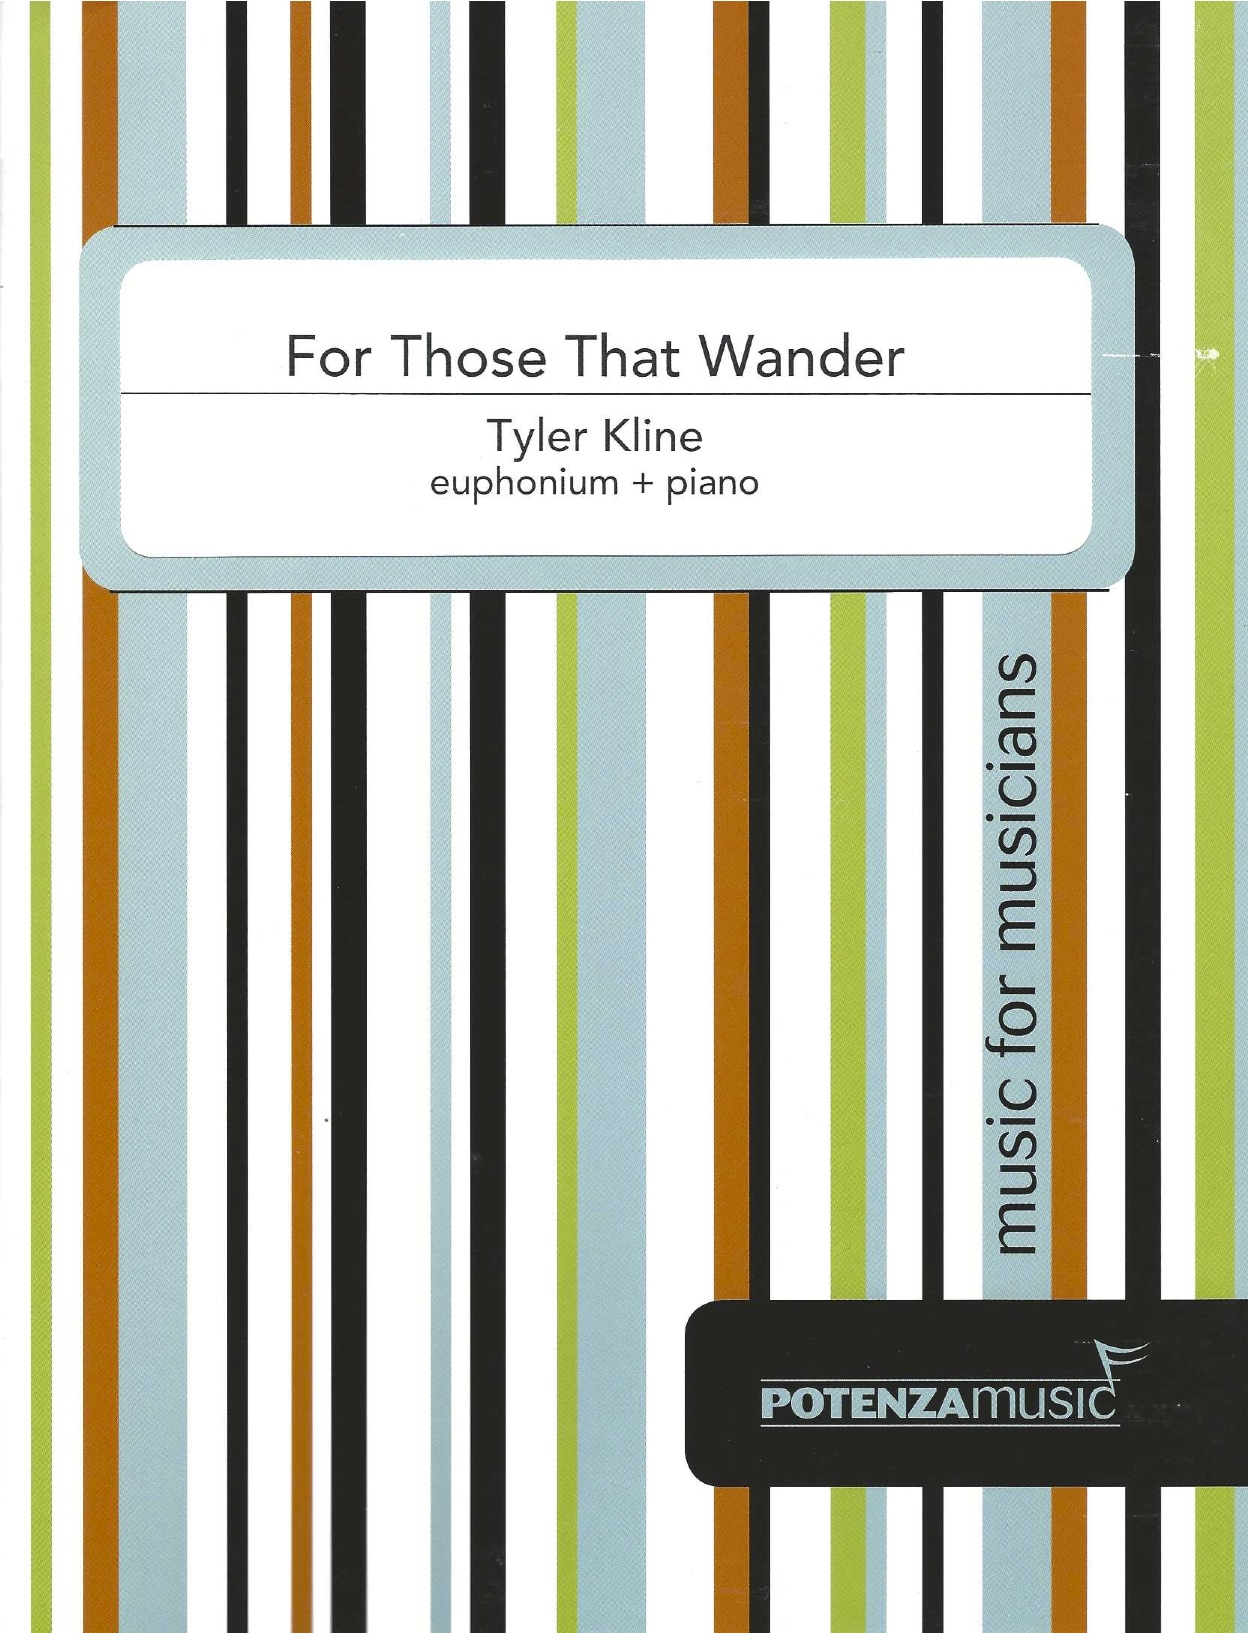 For Those That Wander - Tyler Kline - Euphonium and Piano